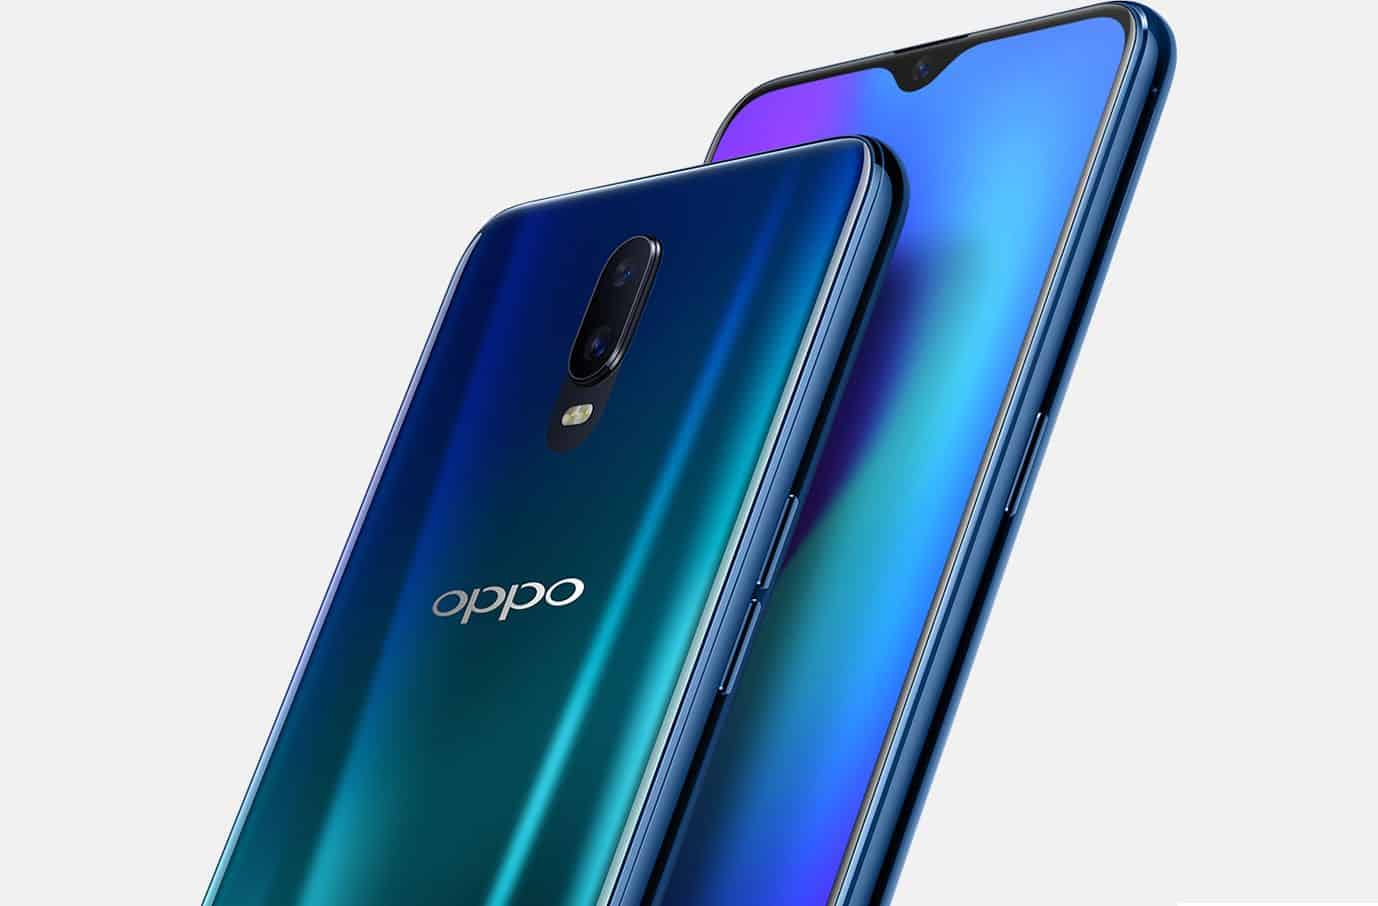 Oppo r17 is official with 6.4-inch water drop present, in-display fingerprint sensor and 8 gb ram